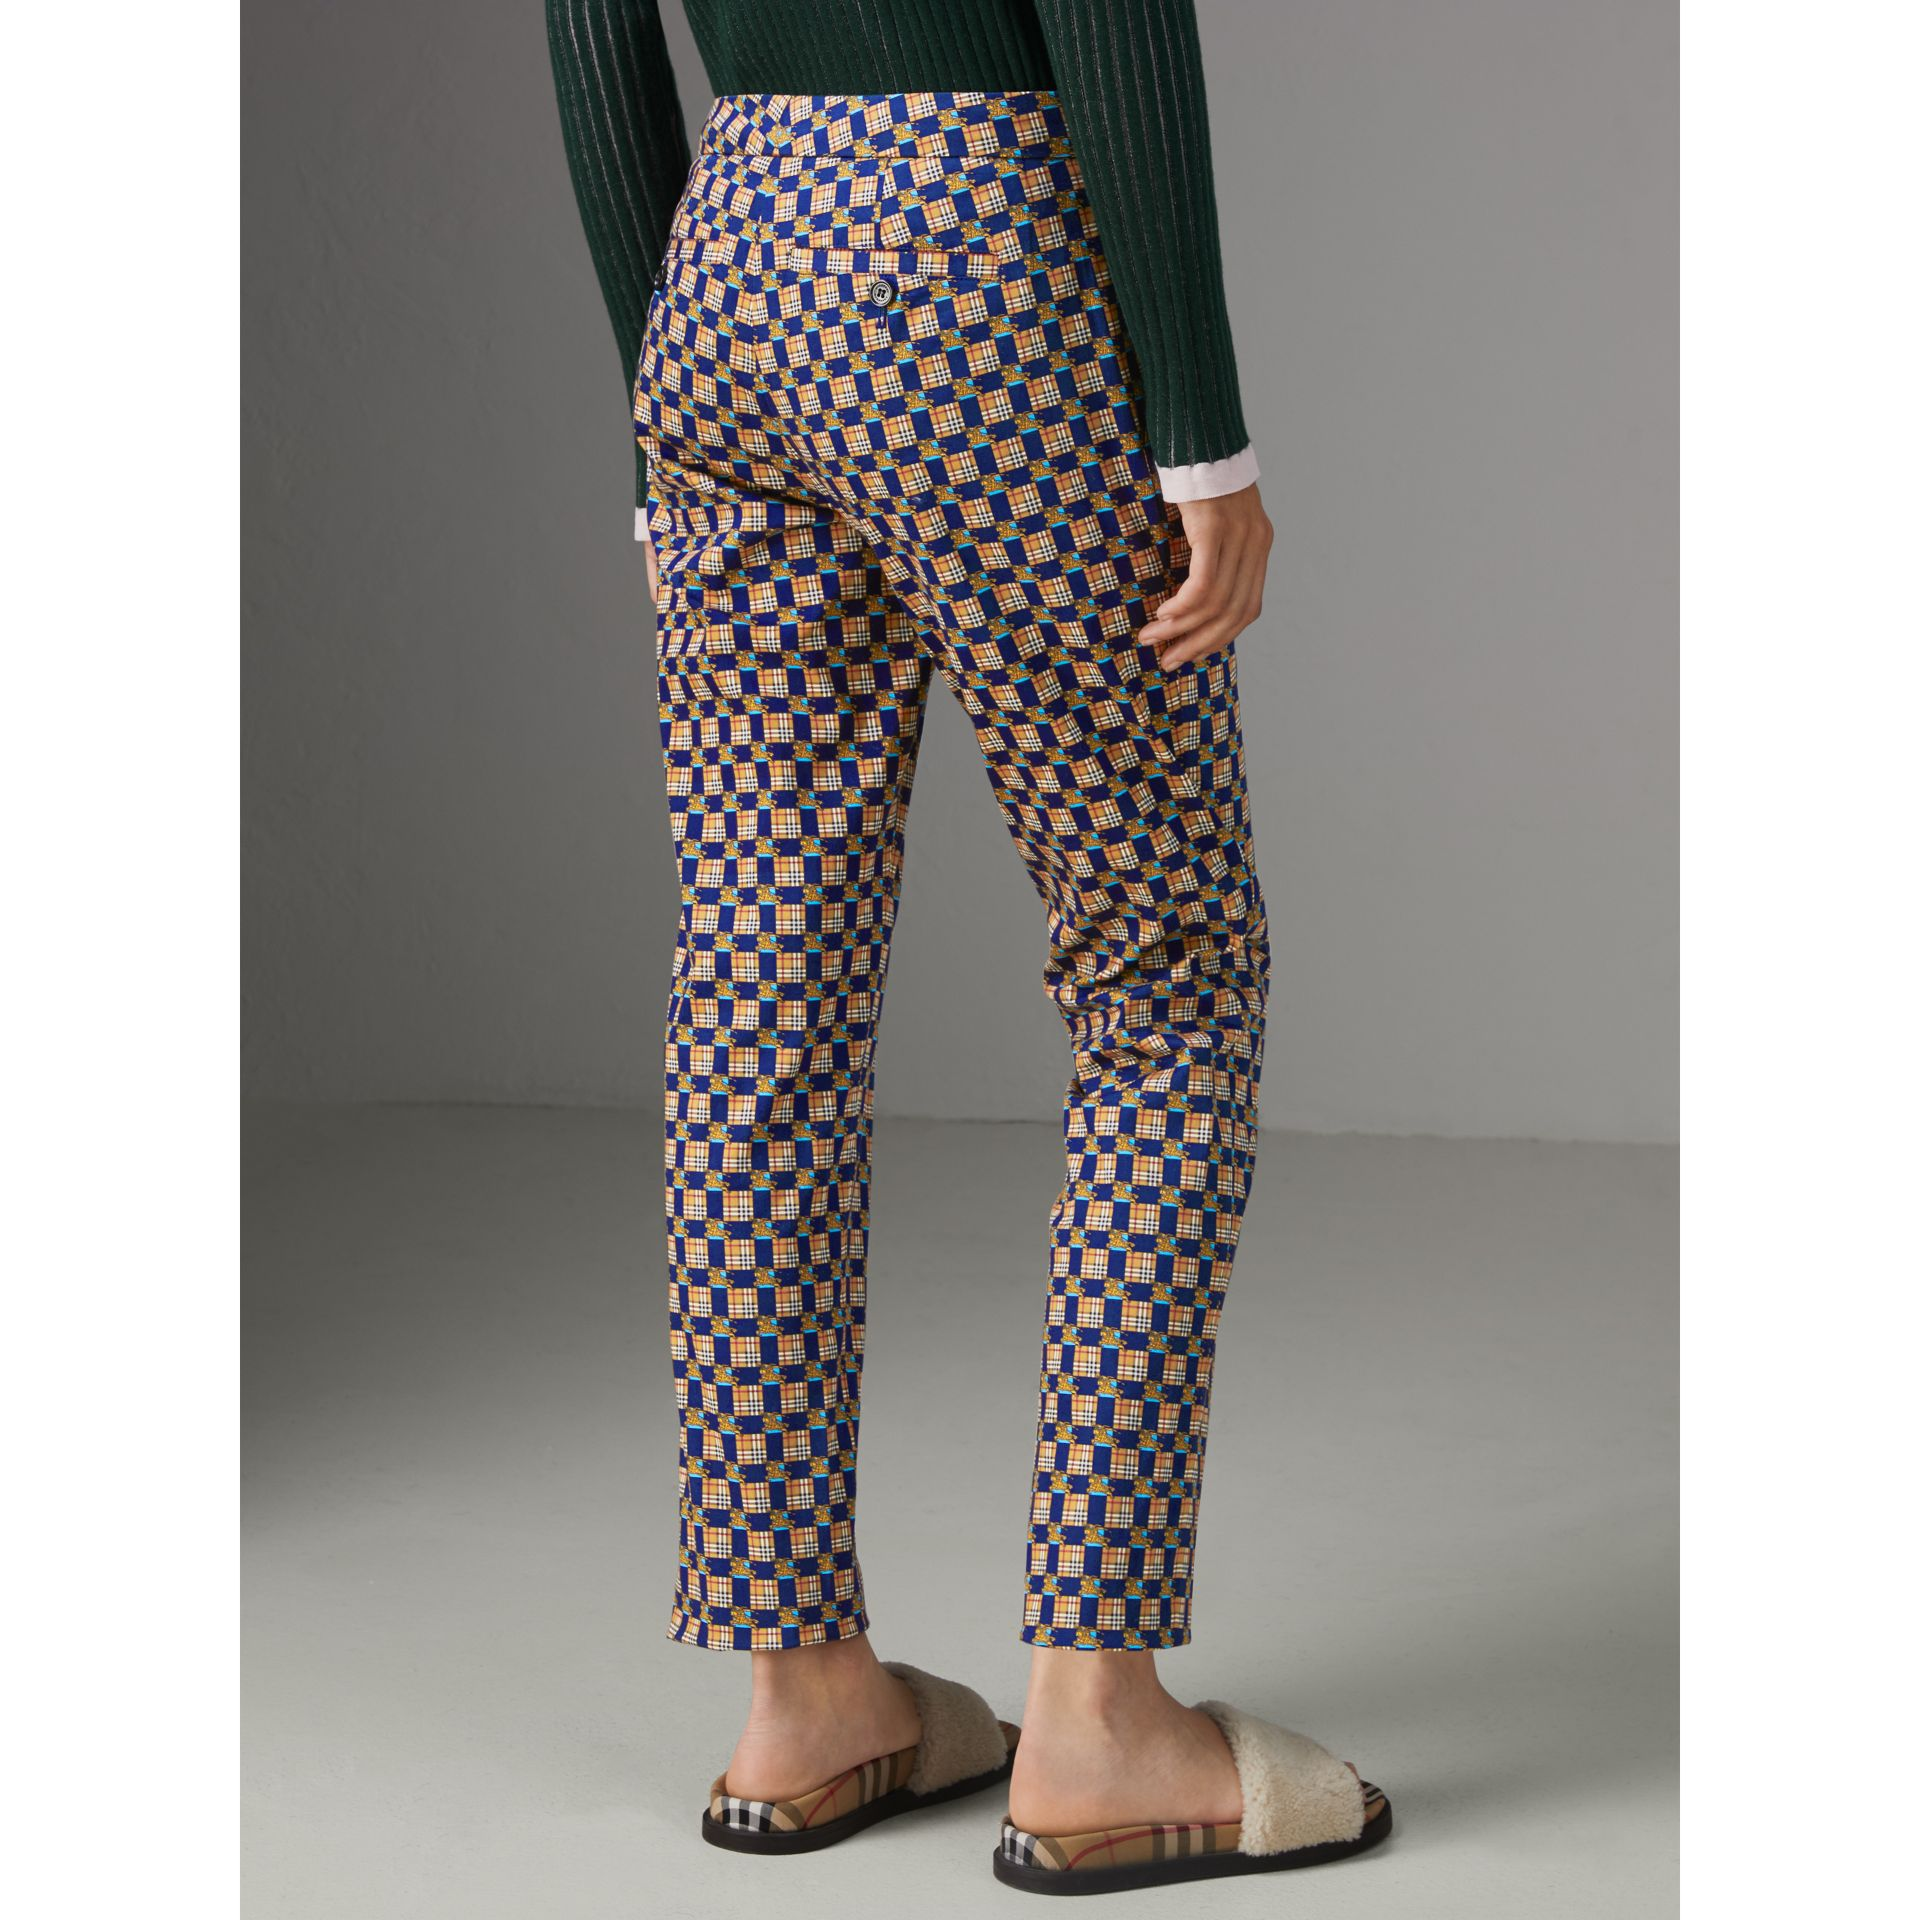 Tiled Archive Print Stretch Cotton Cigarette Trousers in Navy - Women | Burberry Australia - gallery image 2